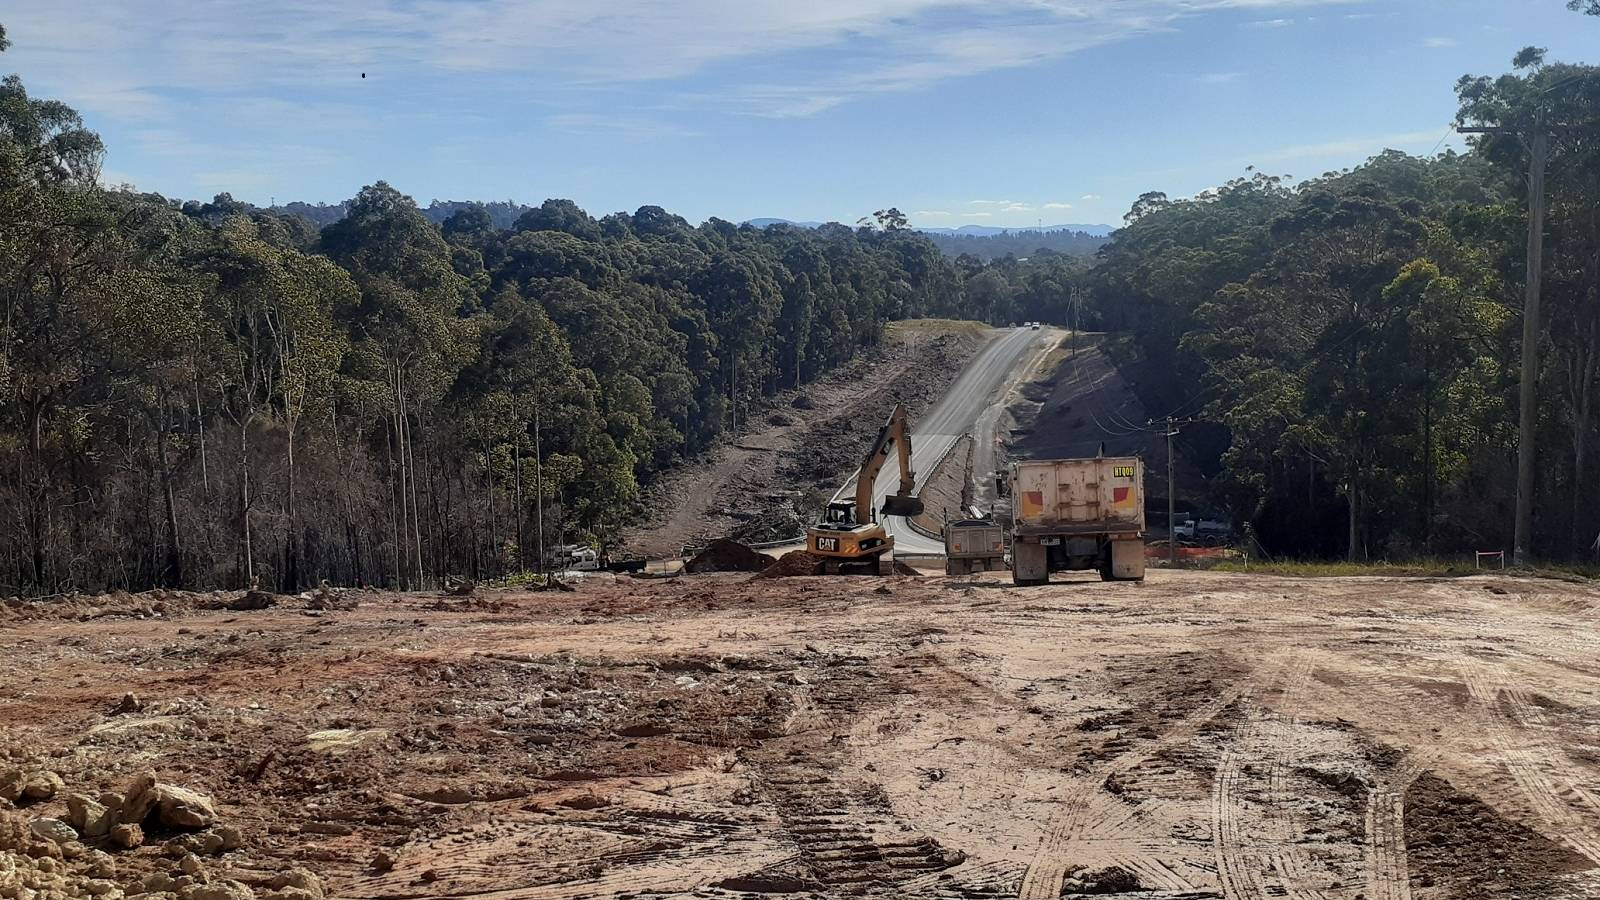 Heavy plant work in a large cleared area surrounded by forest.